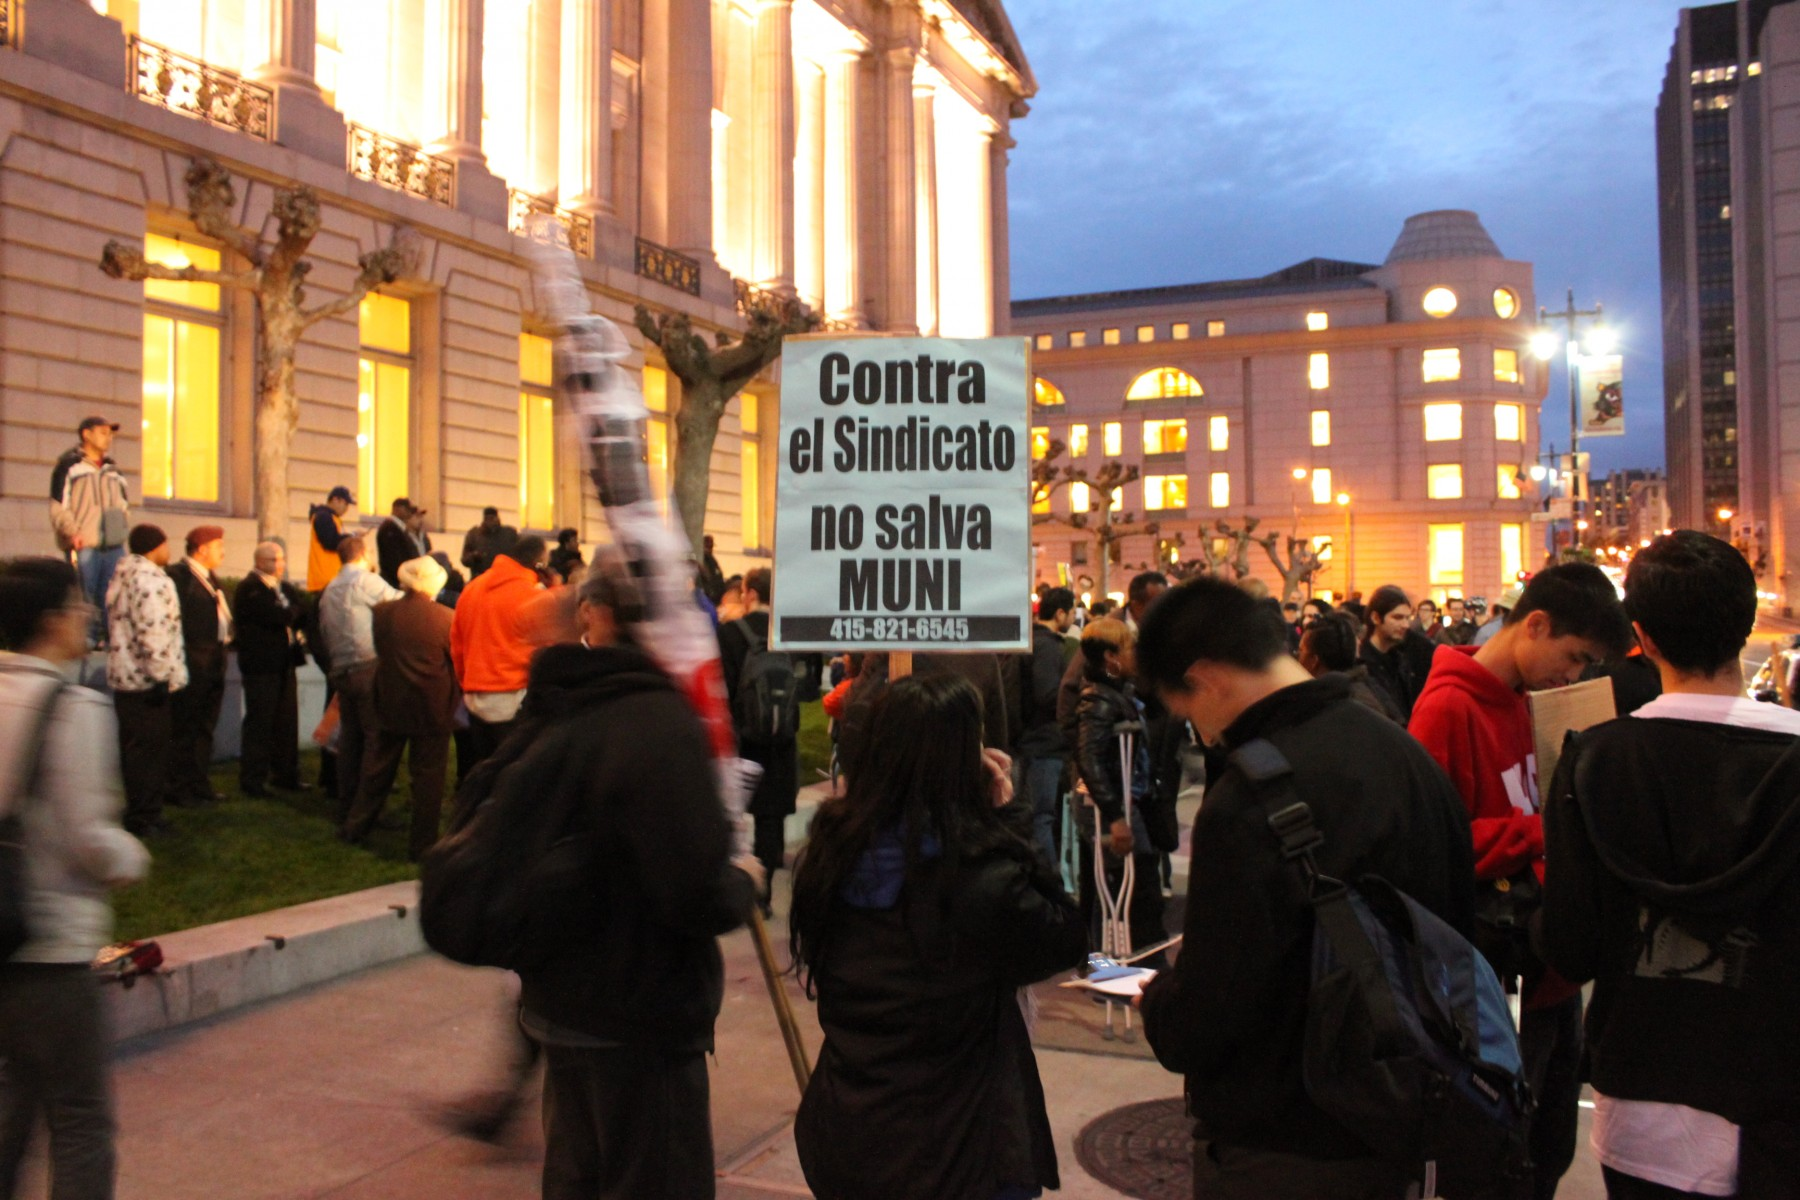 Protesters at City Hall Support Muni Drivers and Denounce Muni Cuts